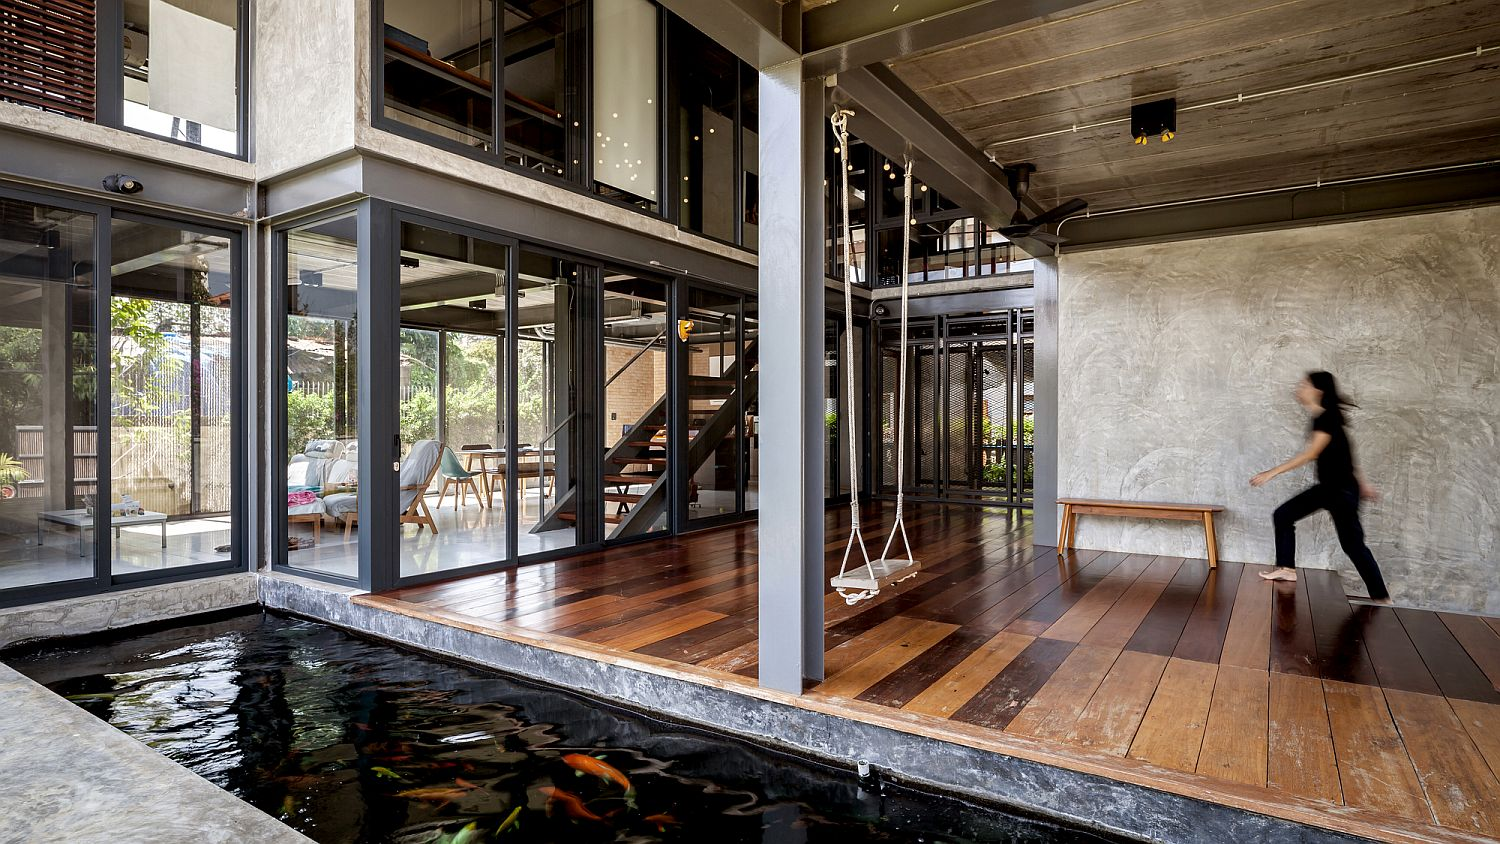 Glass walls, curated natural landscape and koi pond bring serenity to this spacious Bangkok home